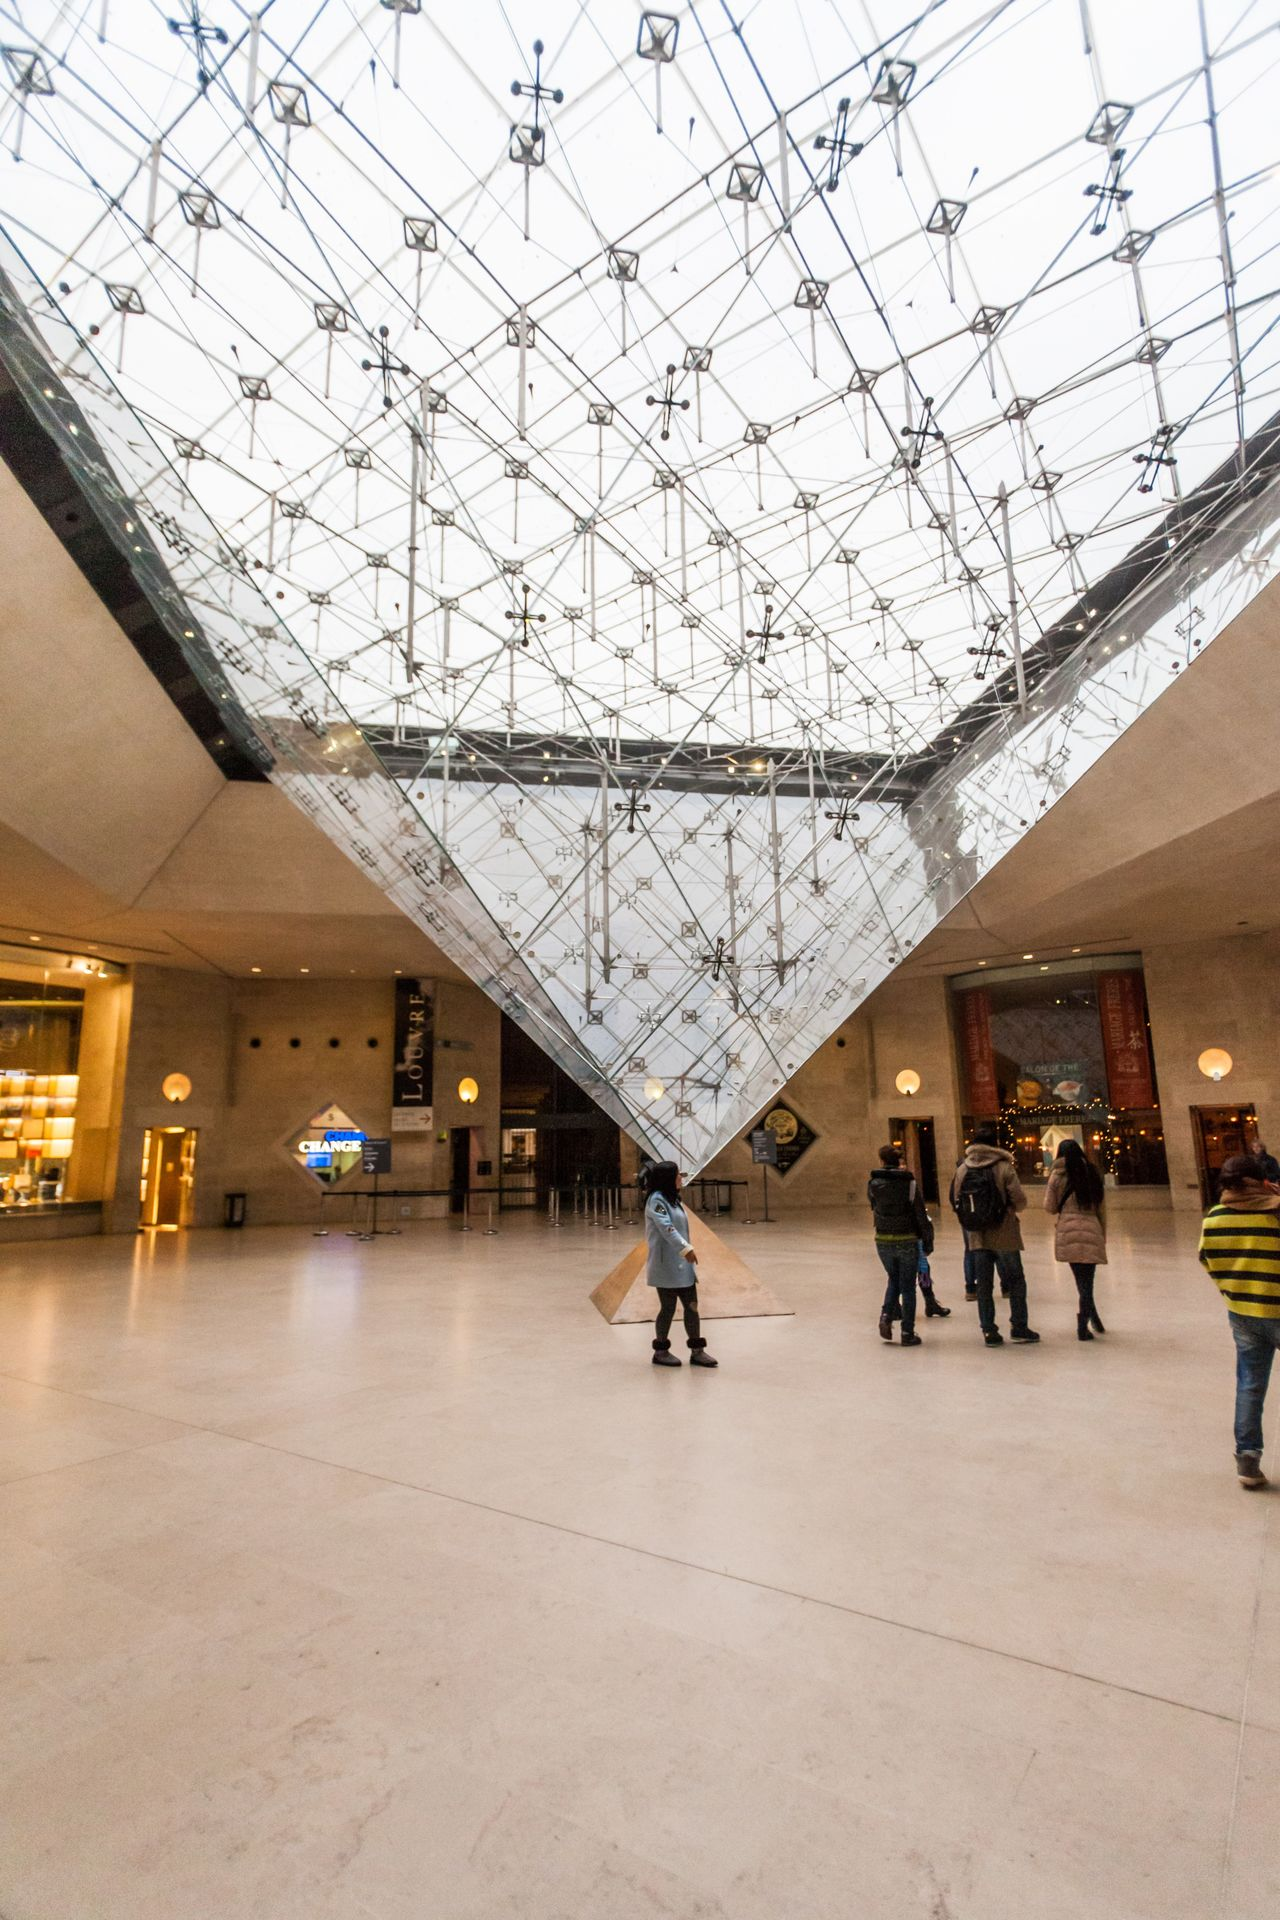 Holiday in France - The Louvre Museum during winter Christmas Architecture Christmas DaVinciCode Europe France Heritage Historical Building Lourve LourveMuseum Louvre Mona Lisa Monument Museum Paris Paris, France  Pyramid Pyramide Du Louvre The Lourve The Louvre The Louvre Museum  Tourism Tourist Winter